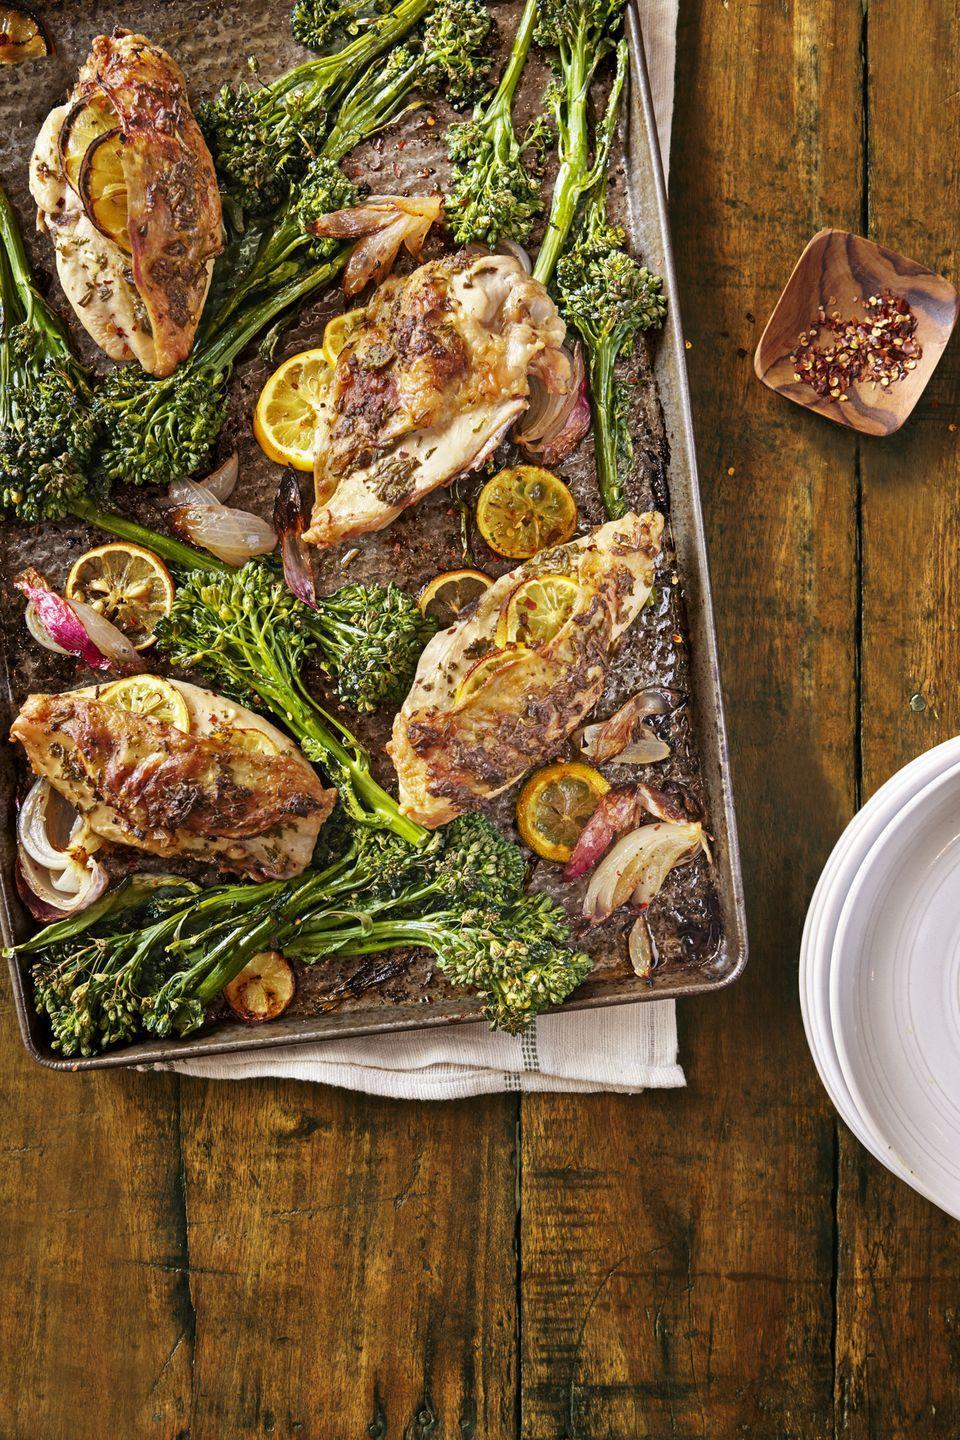 """<p>Vitamin-packed Broccolini is an ingenious hybrid between broccoli and Chinese broccoli.</p><p><strong><a href=""""https://www.countryliving.com/food-drinks/recipes/a39830/lemon-rosemary-chicken-with-roasted-broccolini-recipe/"""" rel=""""nofollow noopener"""" target=""""_blank"""" data-ylk=""""slk:Get the recipe"""" class=""""link rapid-noclick-resp"""">Get the recipe</a>.</strong><br></p><p><a class=""""link rapid-noclick-resp"""" href=""""https://www.amazon.com/Nordicware-Natural-Aluminum-Commercial-Bakers/dp/B0049C2S32/?tag=syn-yahoo-20&ascsubtag=%5Bartid%7C10050.g.680%5Bsrc%7Cyahoo-us"""" rel=""""nofollow noopener"""" target=""""_blank"""" data-ylk=""""slk:SHOP BAKING SHEETS"""">SHOP BAKING SHEETS</a> </p>"""